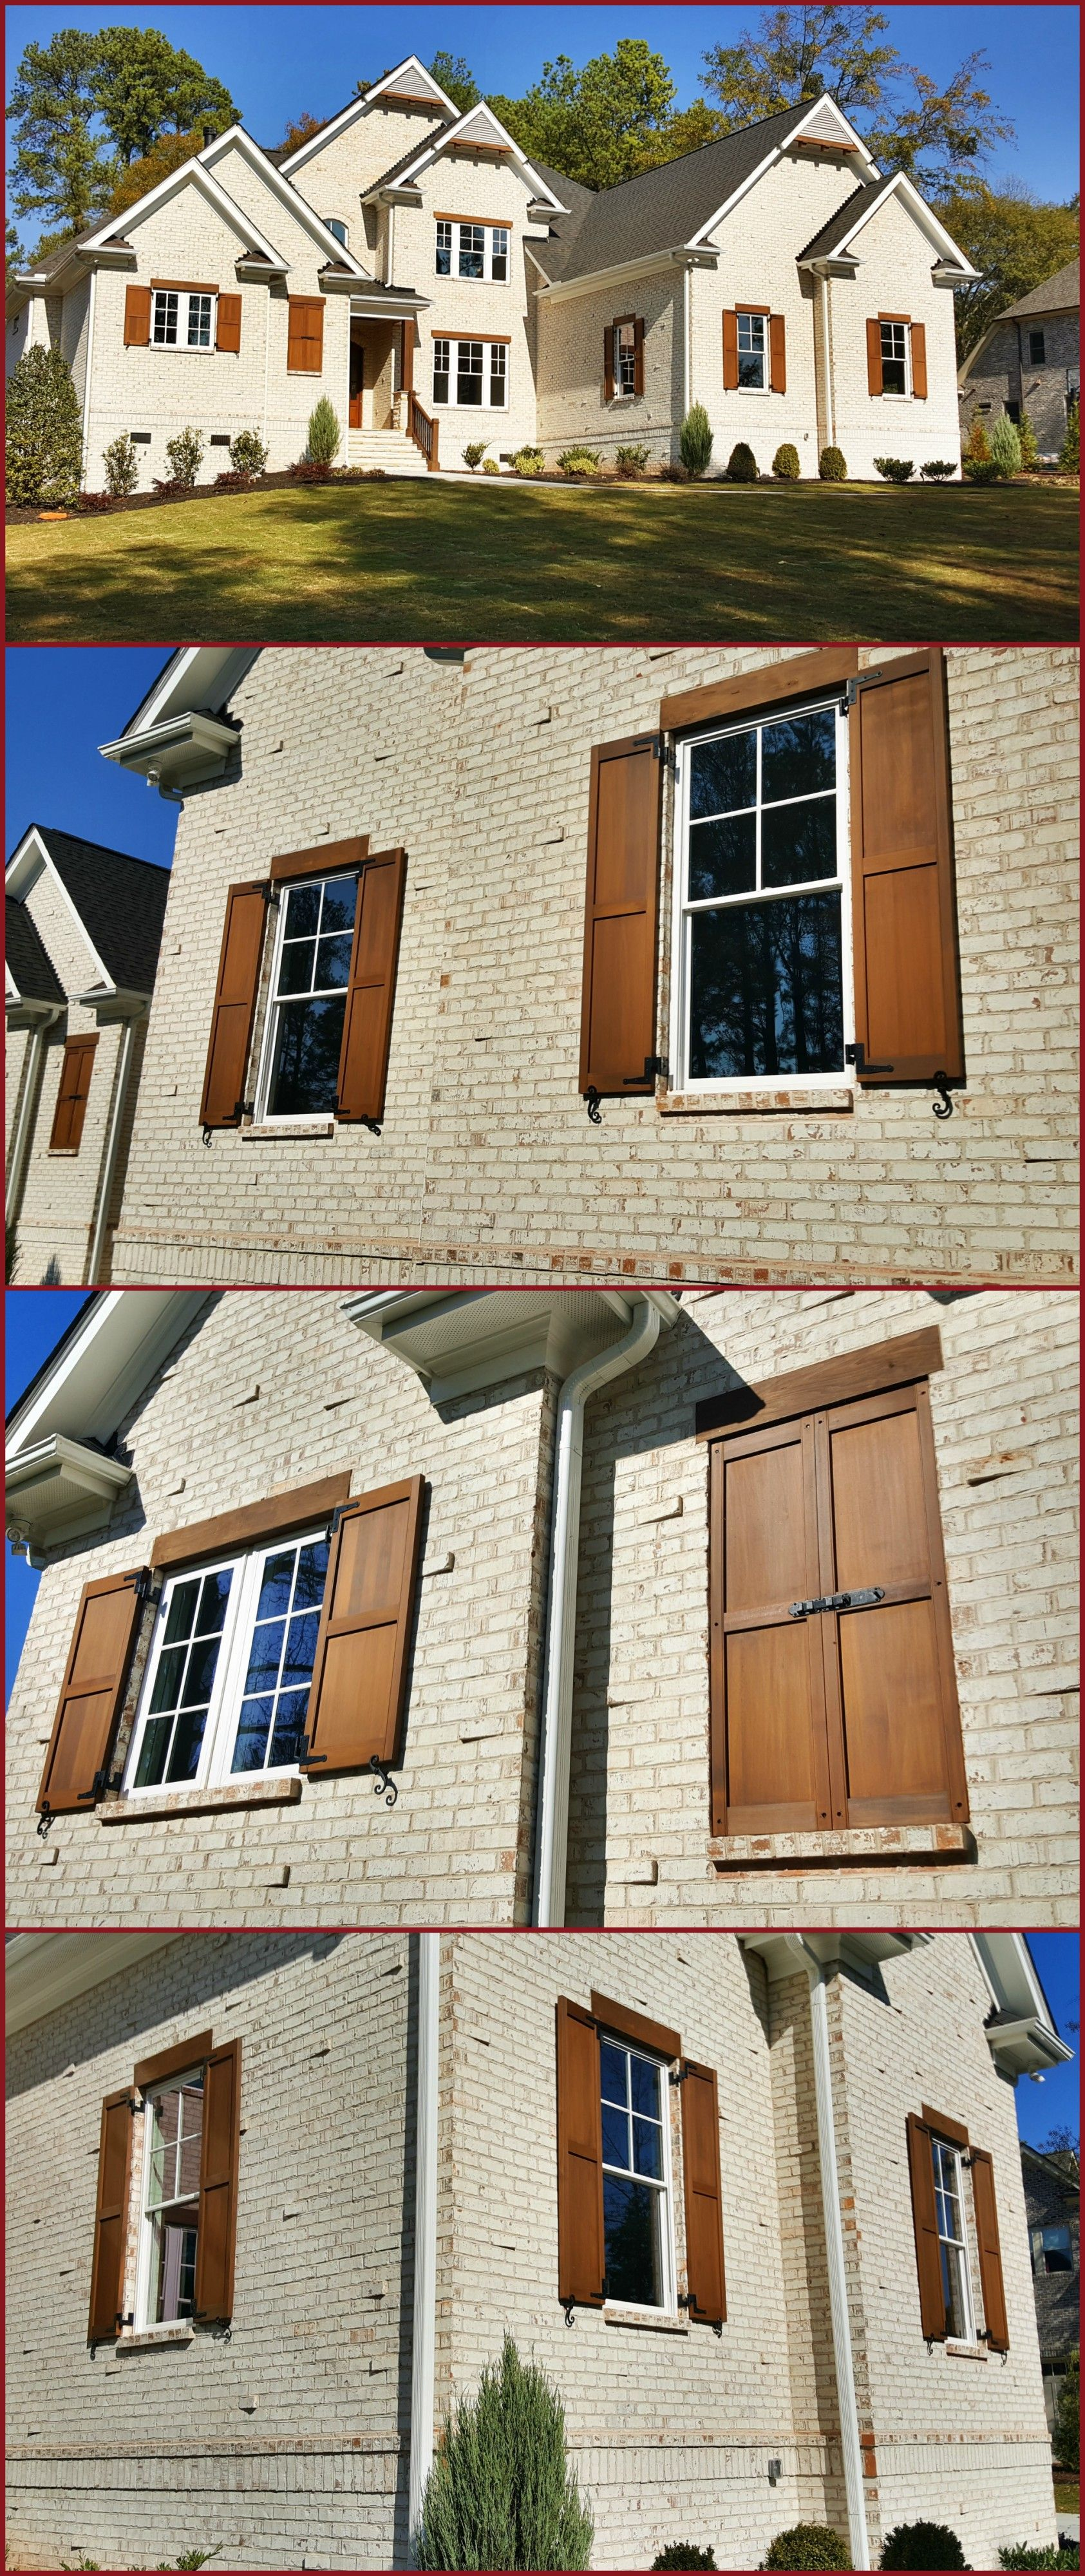 Custom Built And Stained Exterior Cedar Shutters On White Brick House Exterior Shutters